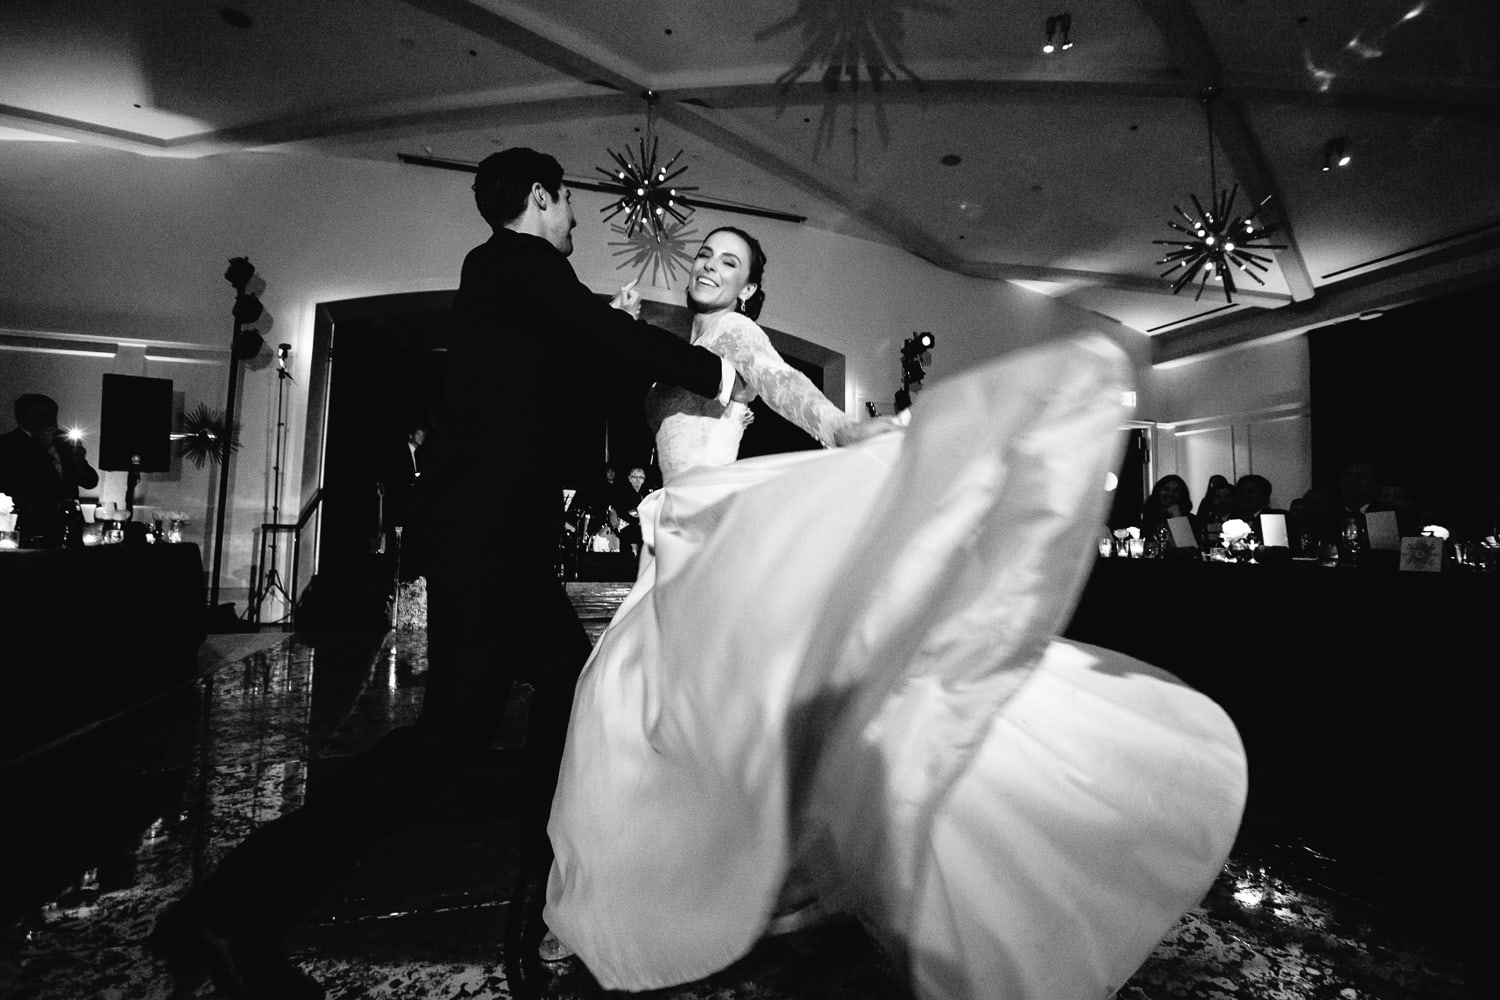 Wedding First dance at the Hotel Bel-Air